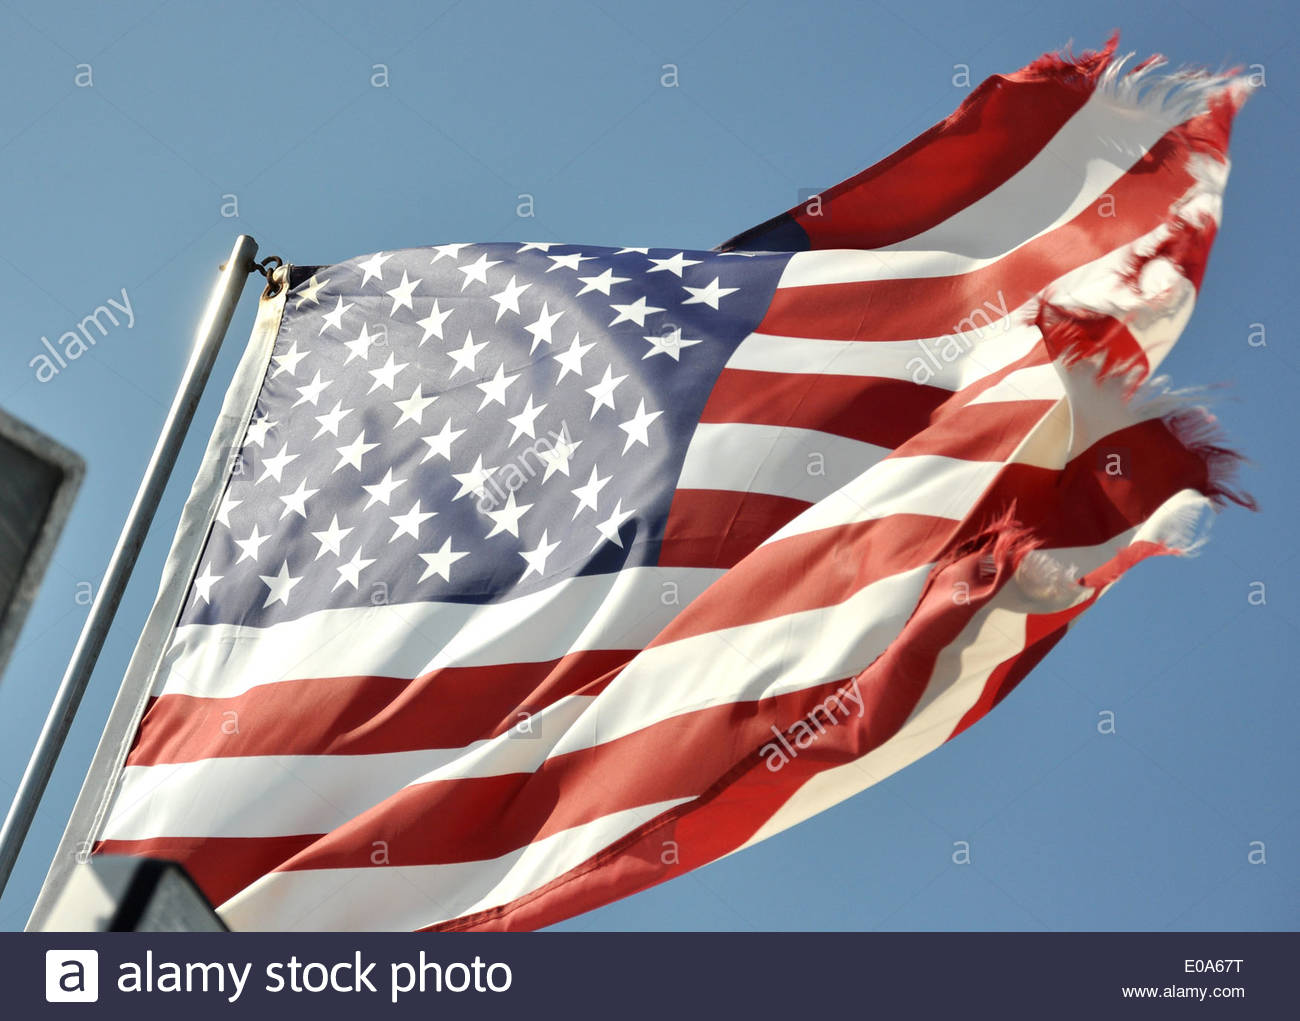 The Stars and Stripes flag fluttering in the breeze - Stock Image